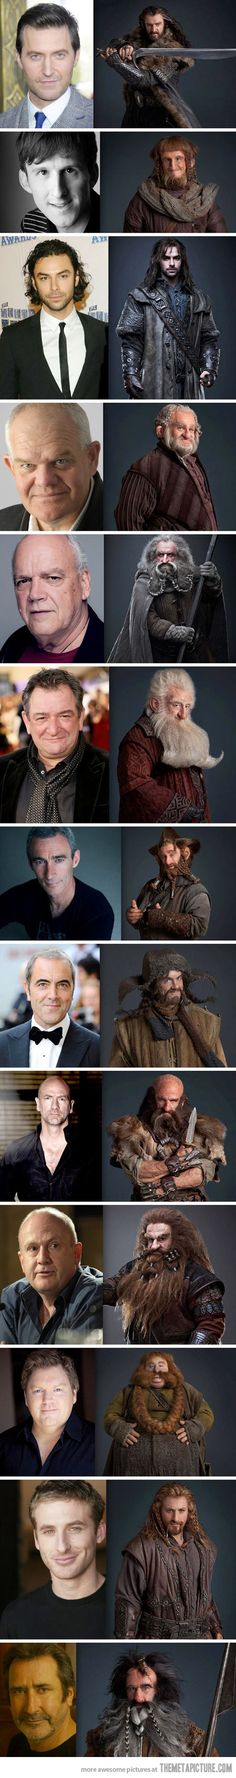 The Hobbit dwarves.